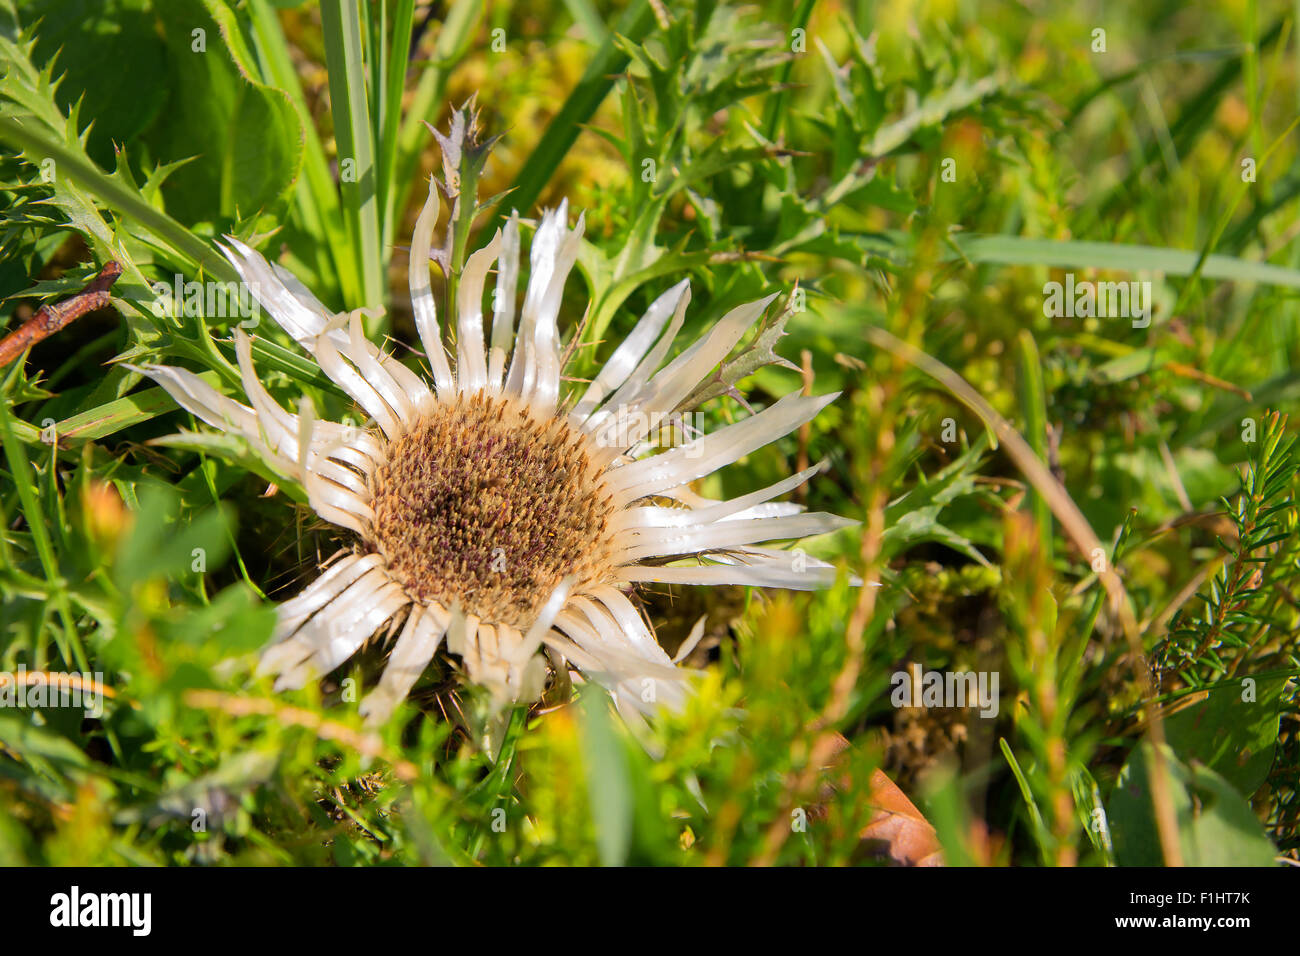 Image of a silver thistle in green gras - Stock Image